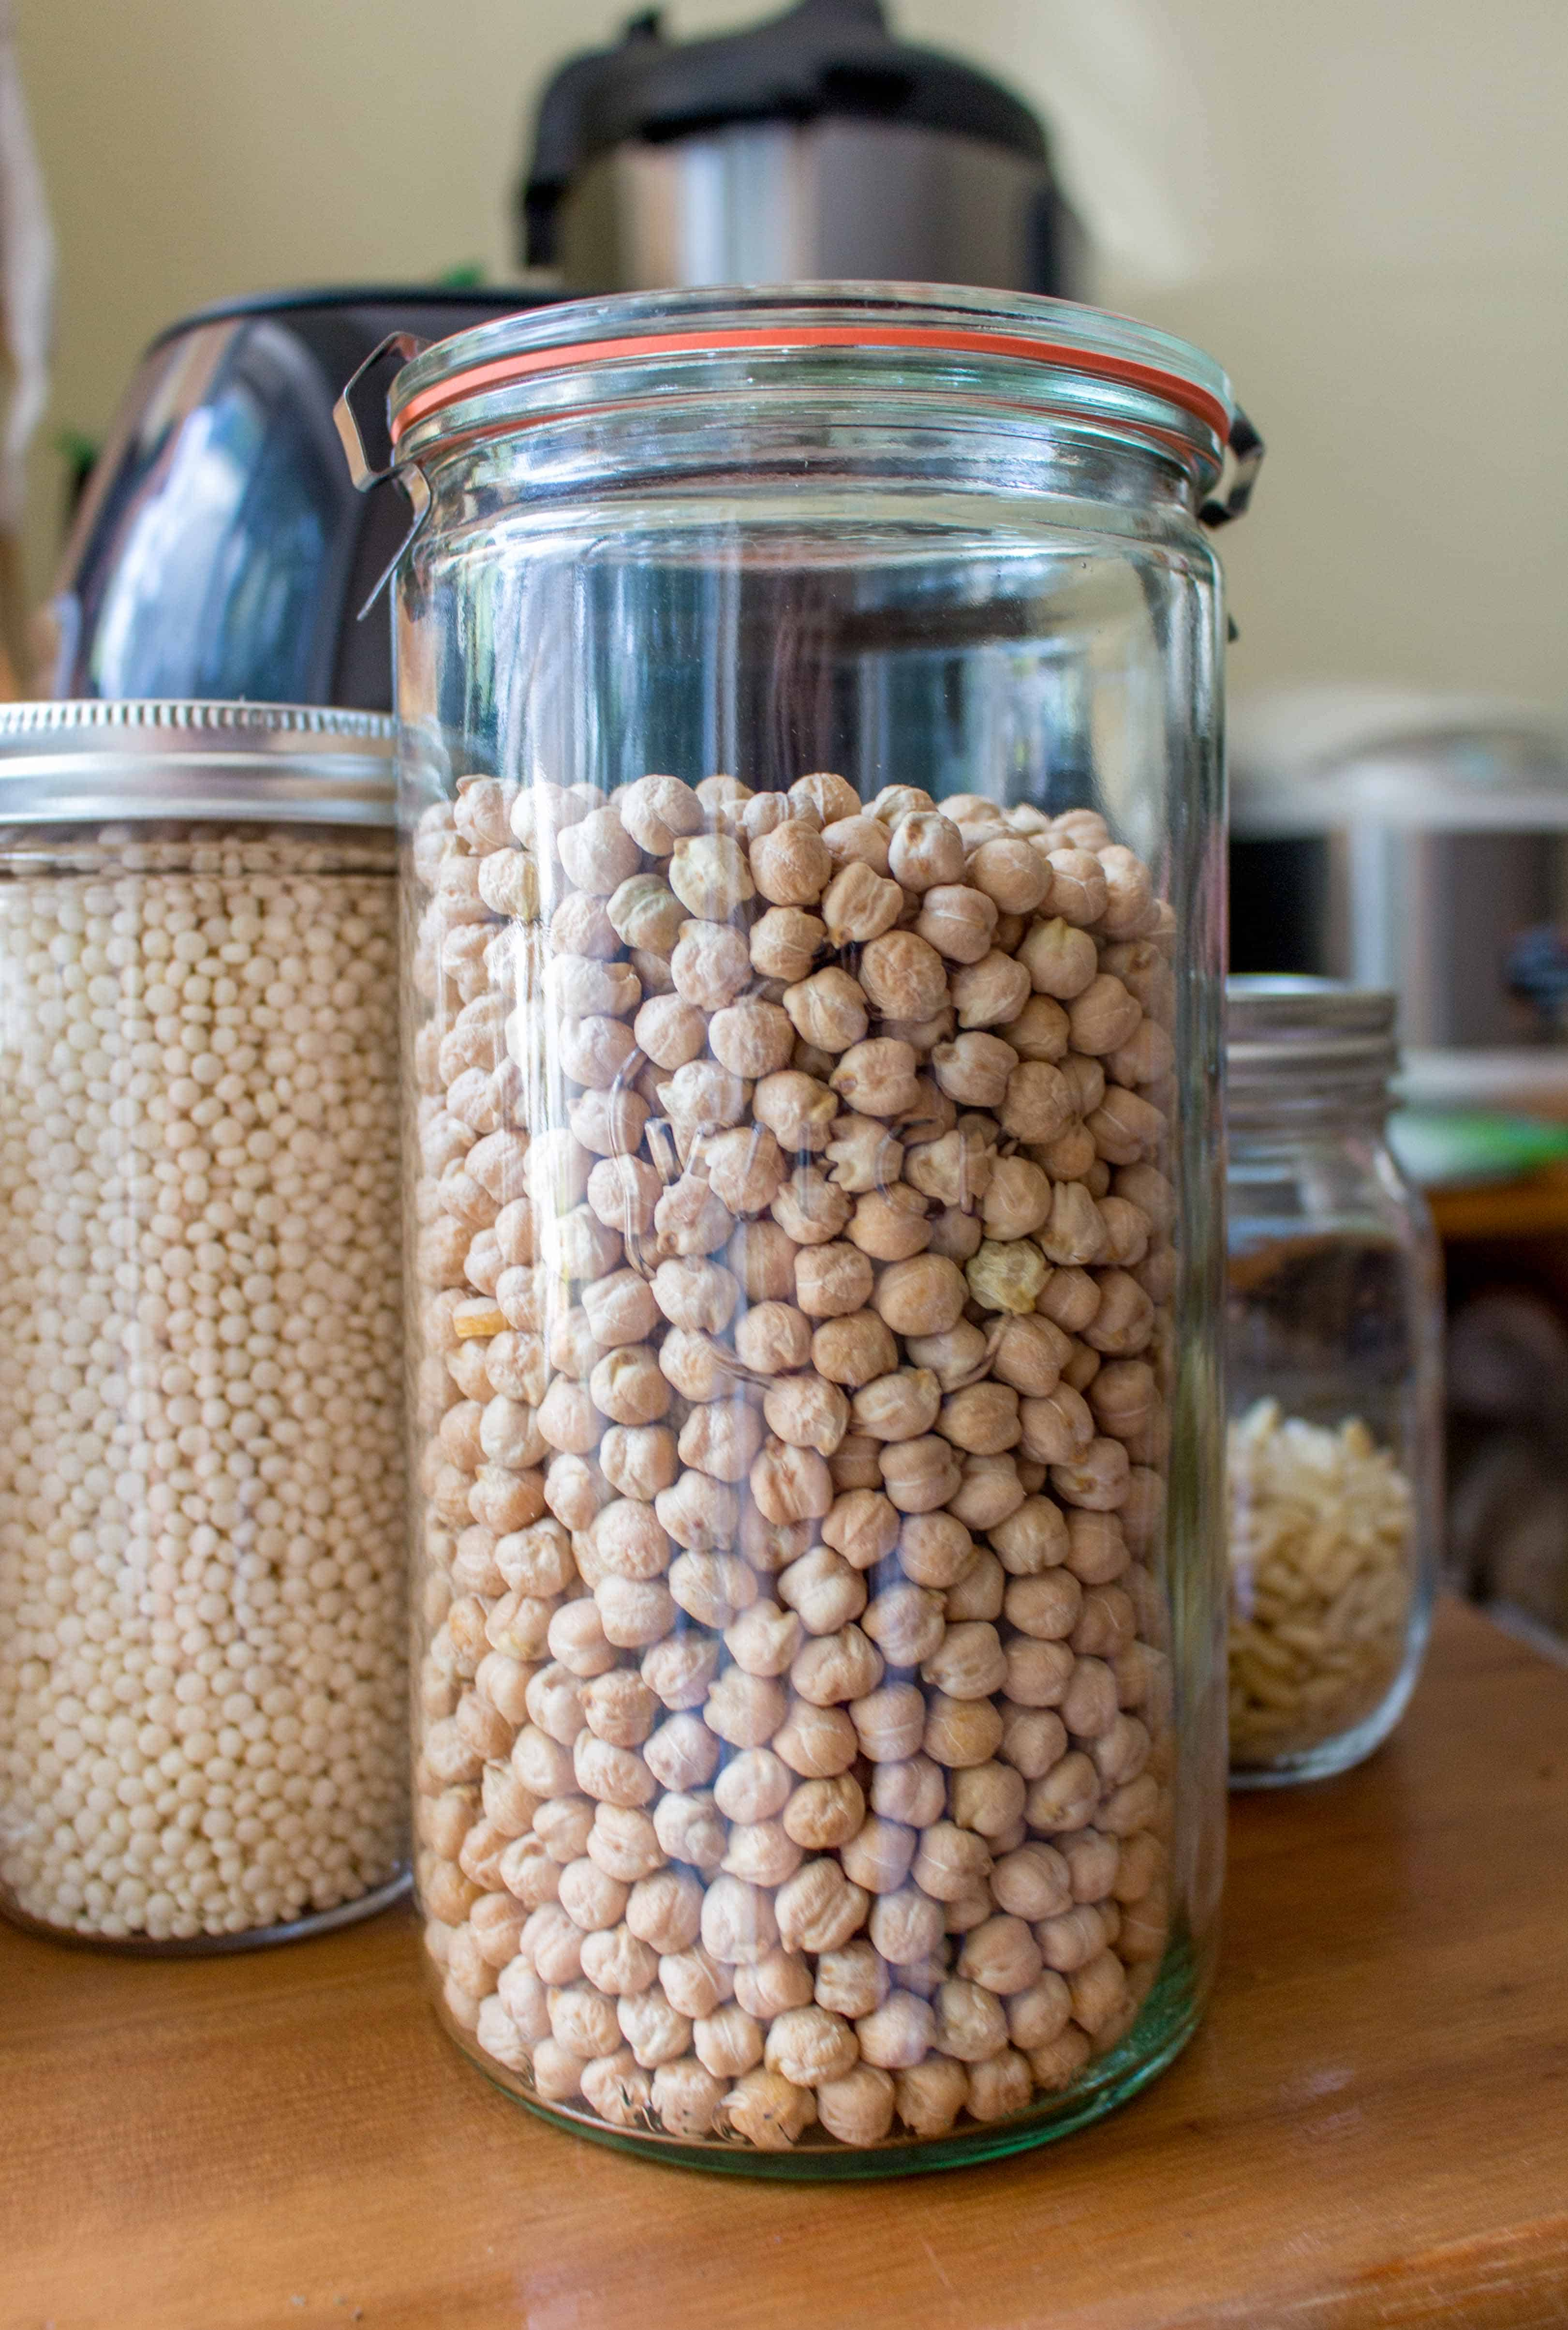 Here's how to easily make chickpeas in an Instant Pot - a simple and quick method for cooking dried garbanzo beans in a pressure cooker!